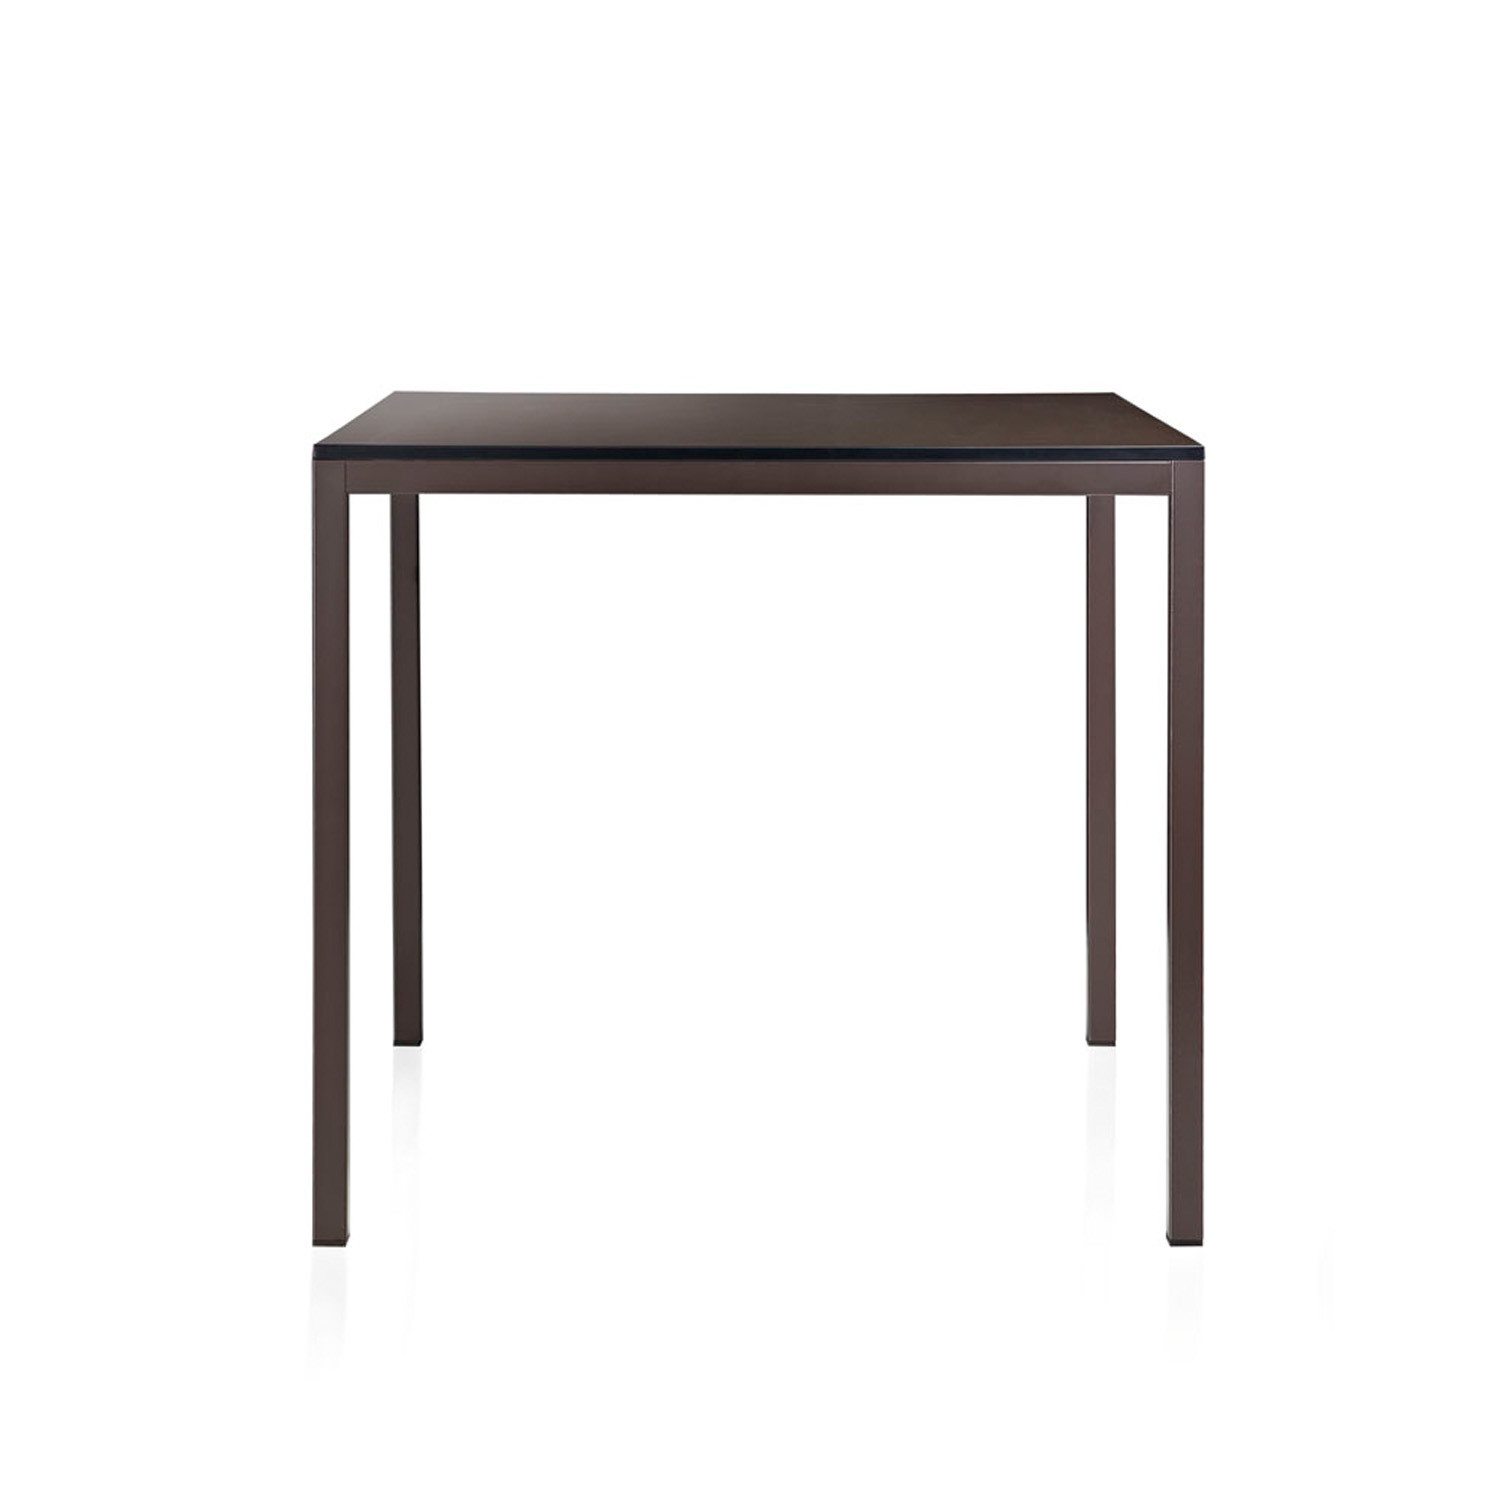 Charlie Dining Table from Apres